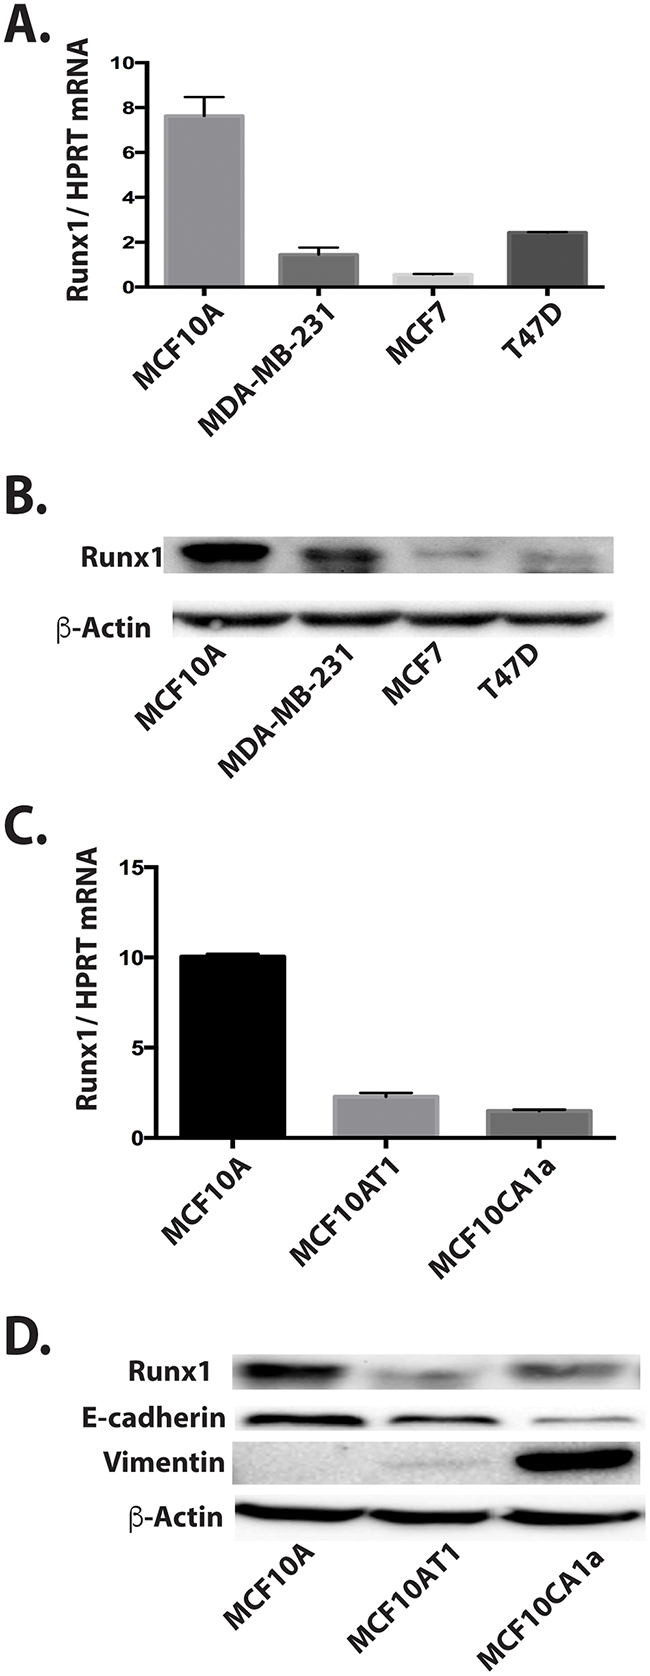 Decreased Runx1 expression is related to breast cancer progression in cell models.